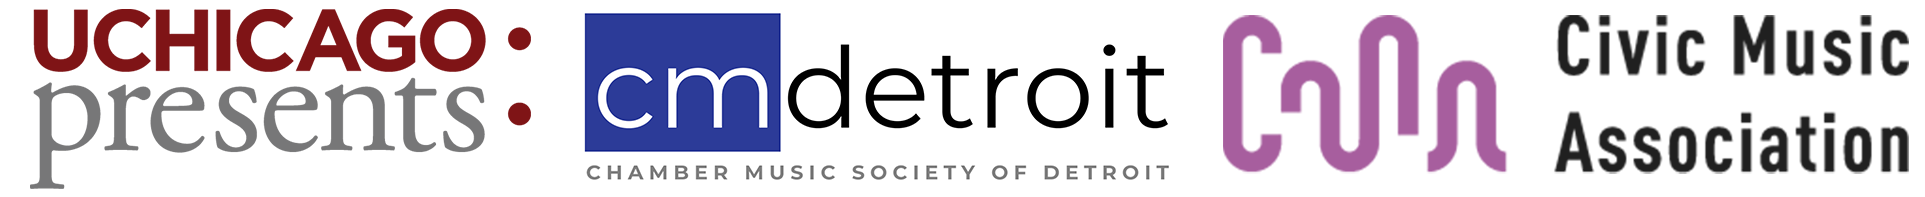 UChicago Presents, Chamber Music Society of Detroit, and Civic Music Association of Des Moines logos